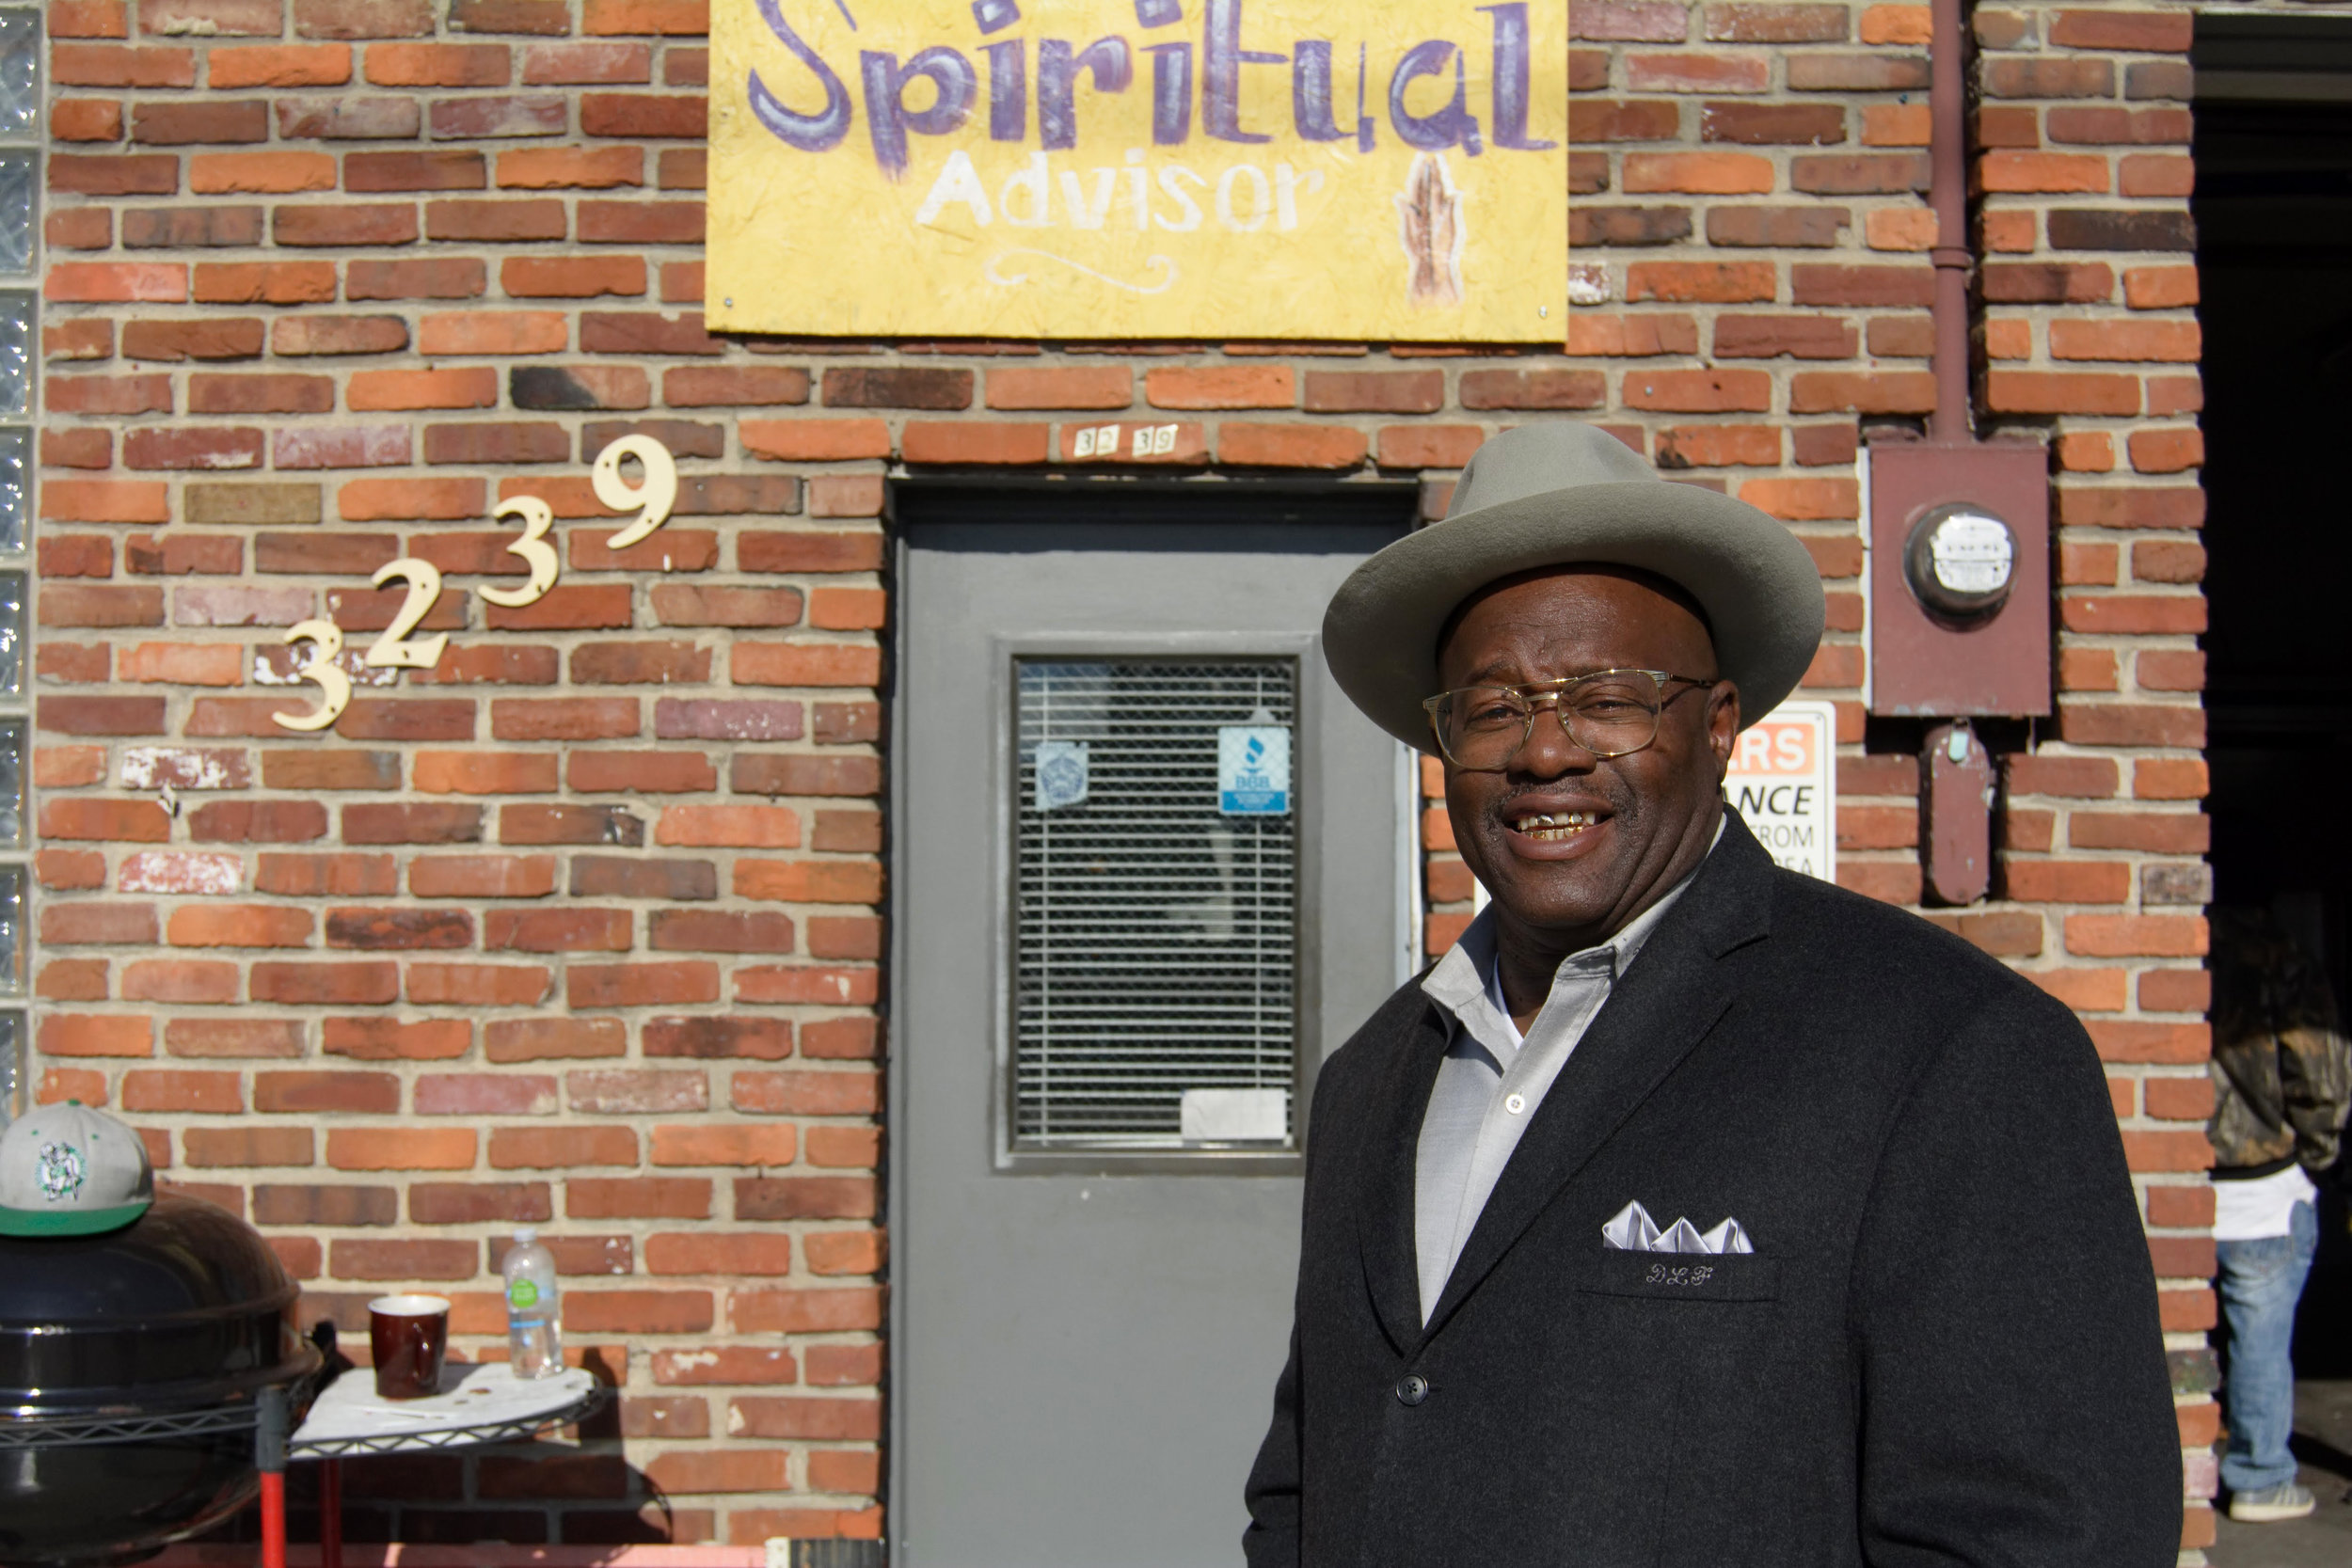 """The West End has a lot of potential. We have a lot of children out here that need some positive role models. They need somebody that can tell them the difference between people, places, and things to not try in life. I think that would start at a church or from somebody that was raised in the 50's. They need someone that would obviously be able to instill positive words, words of affirmation, words of encouragement, words that can enlighten one to do something different other than what they see being done and being exploited on television. So, I think it would start in church and through positive personnel.   The children are confused. They need something to do and they have nothing to look forward to. The man has been out of the home and placed throughout the prison system. I'm thinking that positive character is what these kids need. A lot of them think that there's only one way but I'm here to say that there is another way. It says that, 'All things are possible through God who strengthens us.' I actually believe and spread that. So, if our children are around people doing something different, their outcome would be different. But if we keep shutting the door on them, then the same will come. They just want to be heard.   Be in acceptance of the outcome of your actions. Whatever your actions are, you have to accept the outcome. I mean, if I had to use a biblical term for it, 'He was born to die, that we may live'. If it weren't for crucifixion, there wouldn't have been a resurrection. In order for something to live new in anyone's life, something old has to die."" - Pastor Fortney, Shawnee"